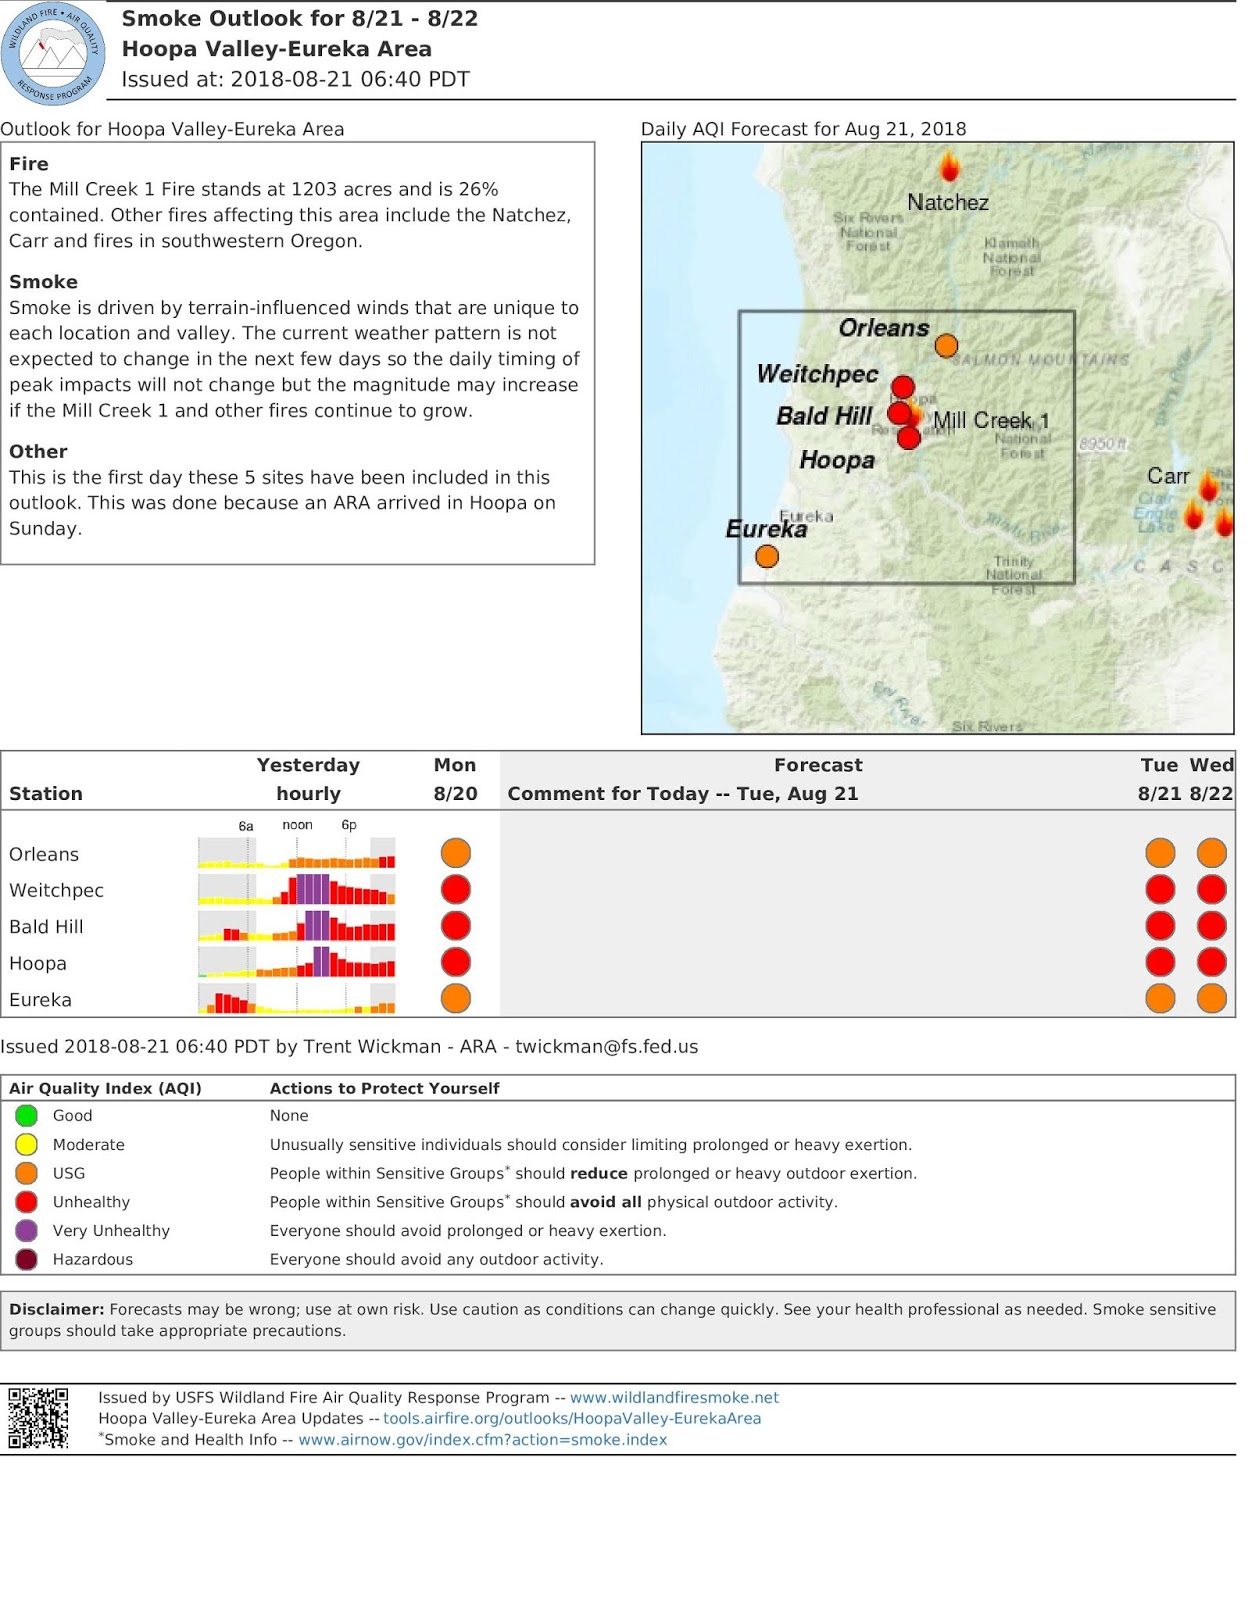 tuesday 8 21 smoke outlook for hoopa valley and eureka areas